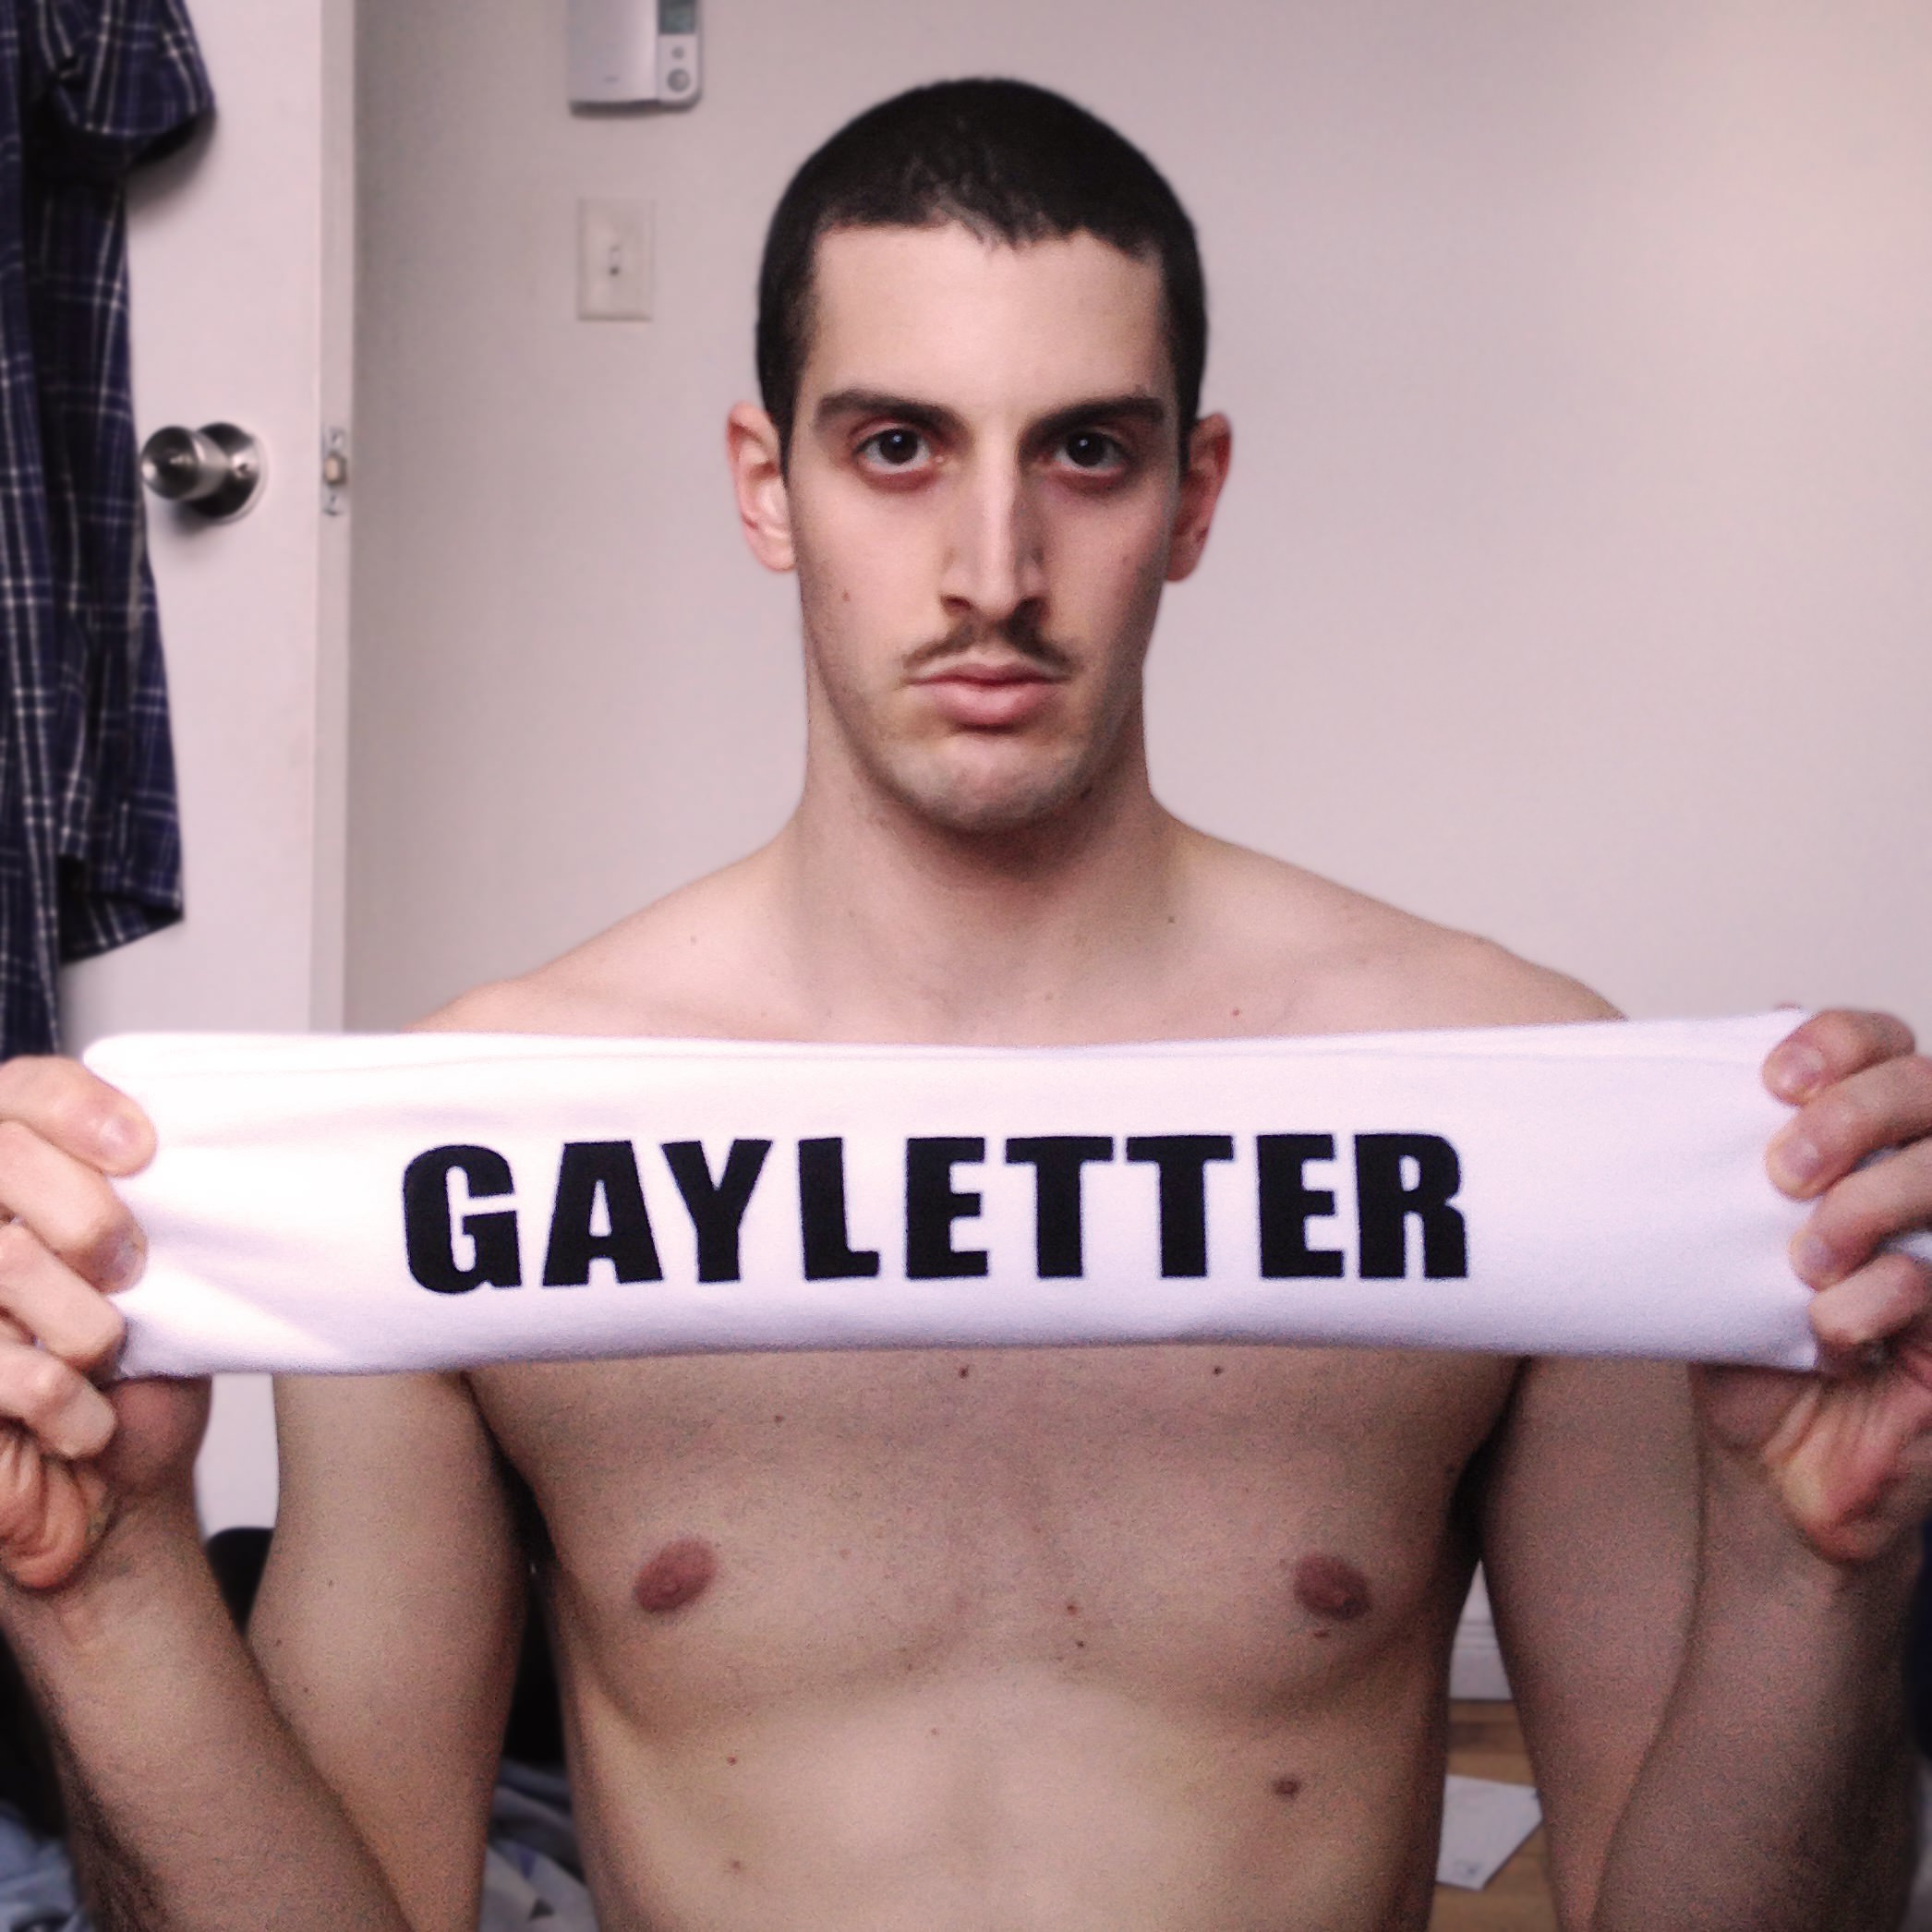 Mike05_GAYLETTER